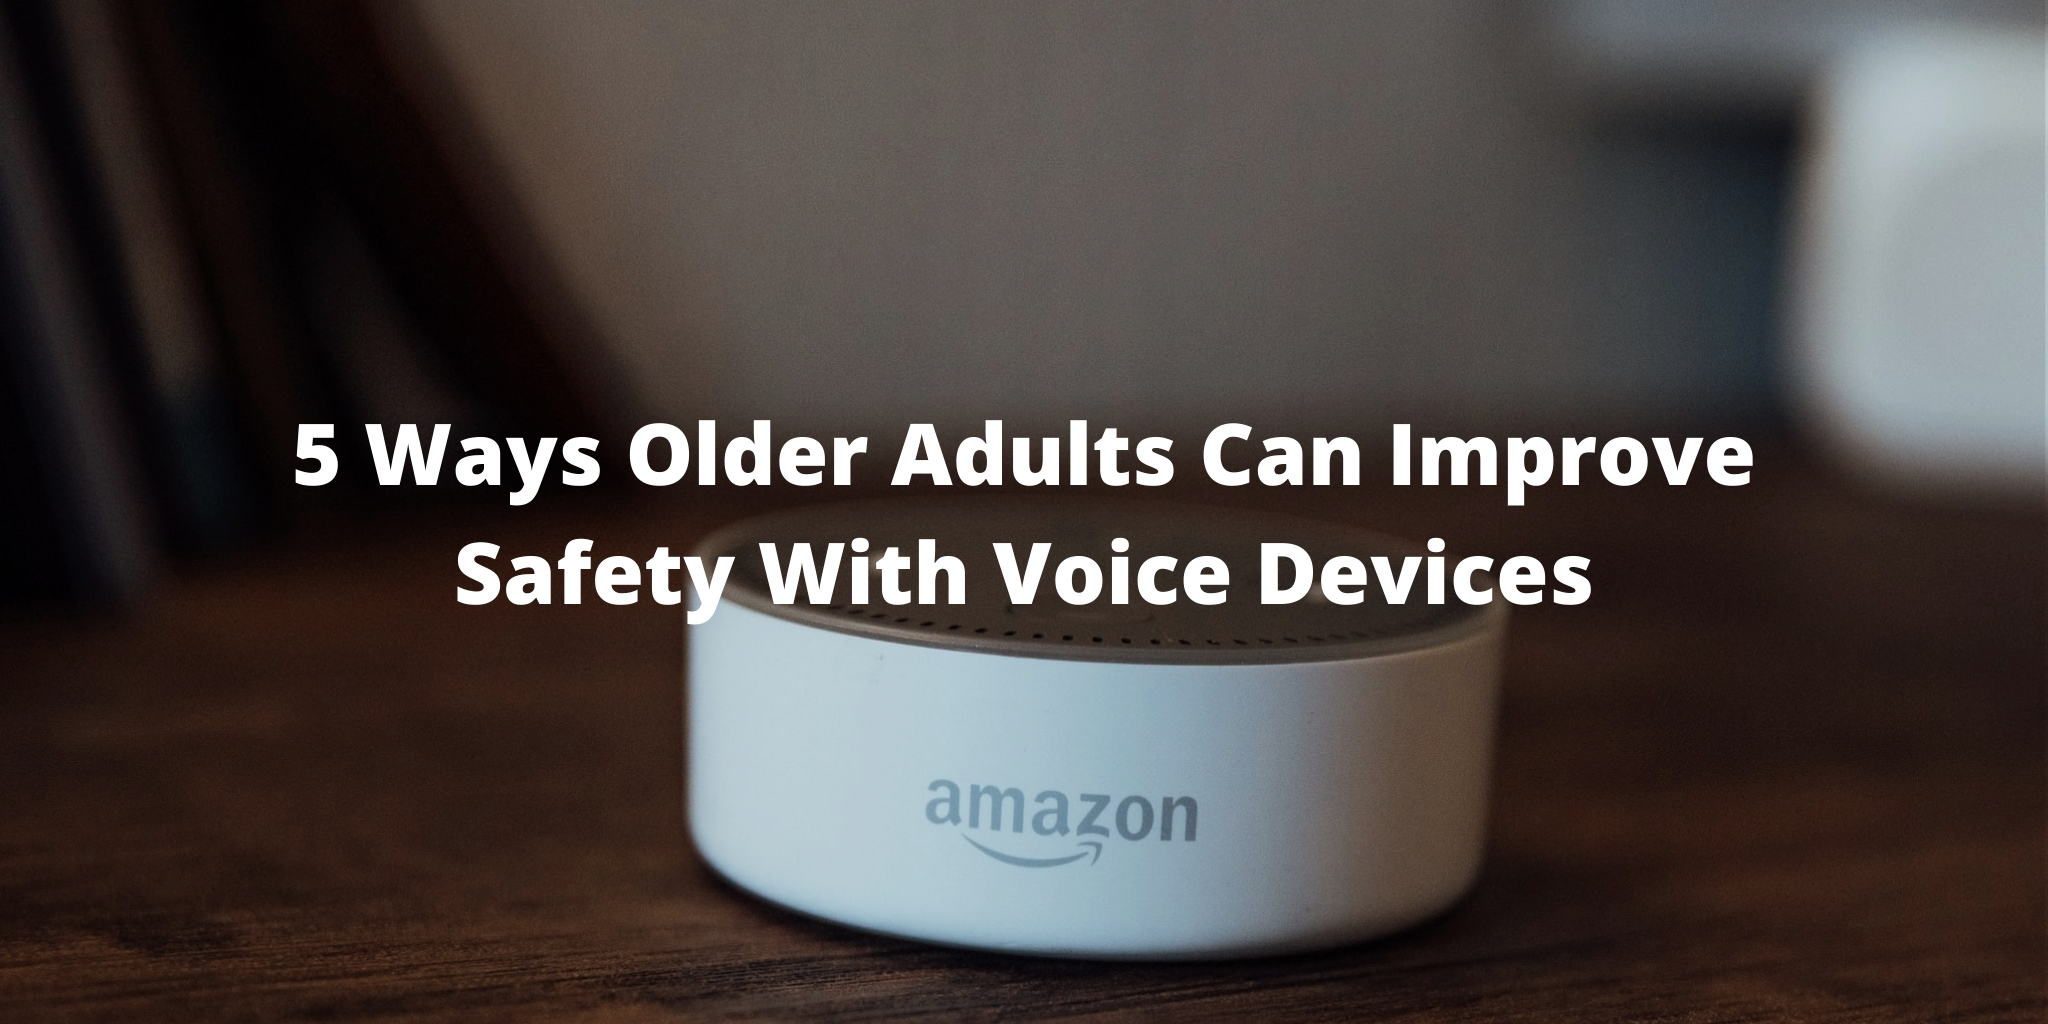 5 Ways Older Adults Can Improve Safety With Voice Devices